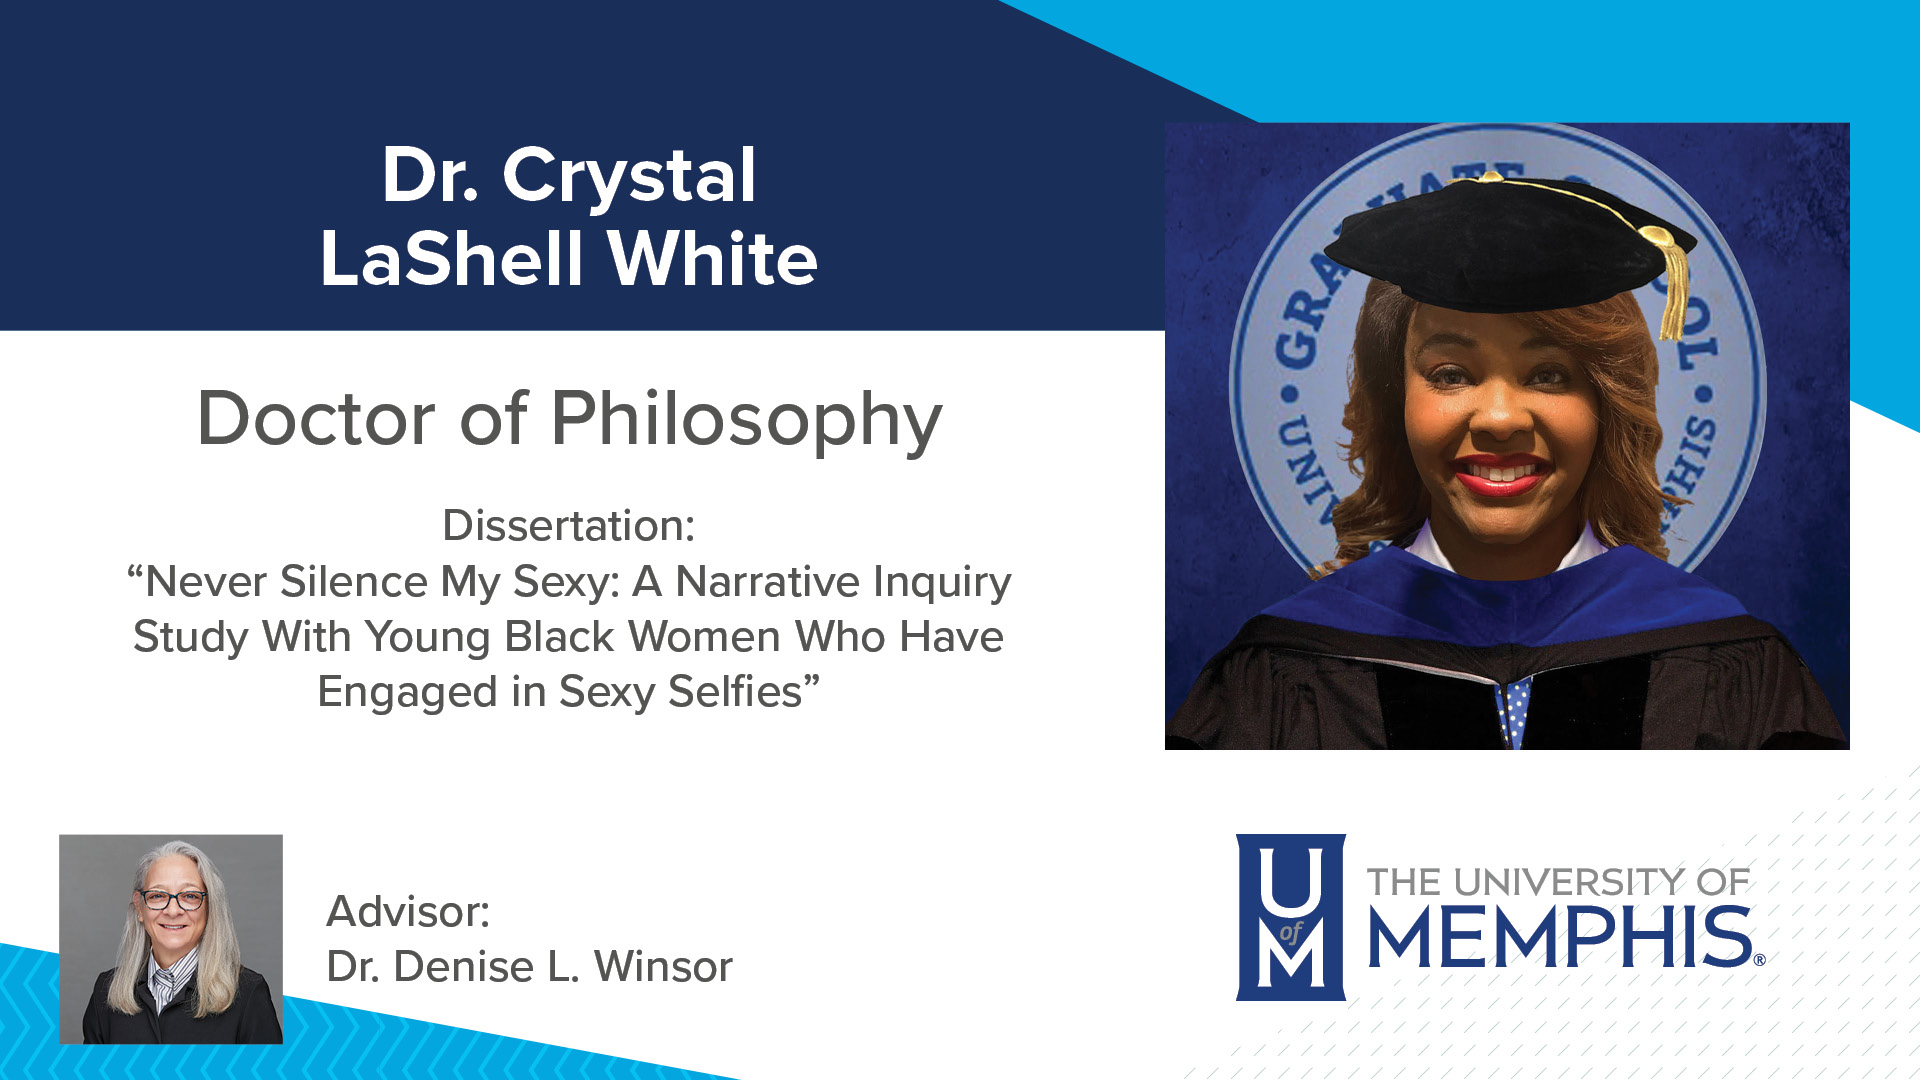 """Dr. Crystal LaShell White Dissertation: """"Never Silence My Sexy: A Narrative Inquiry Study with Young Black Women Who Have Engaged in Sexy Selfies """" Major Professor: Dr. Denise L. Winsor"""